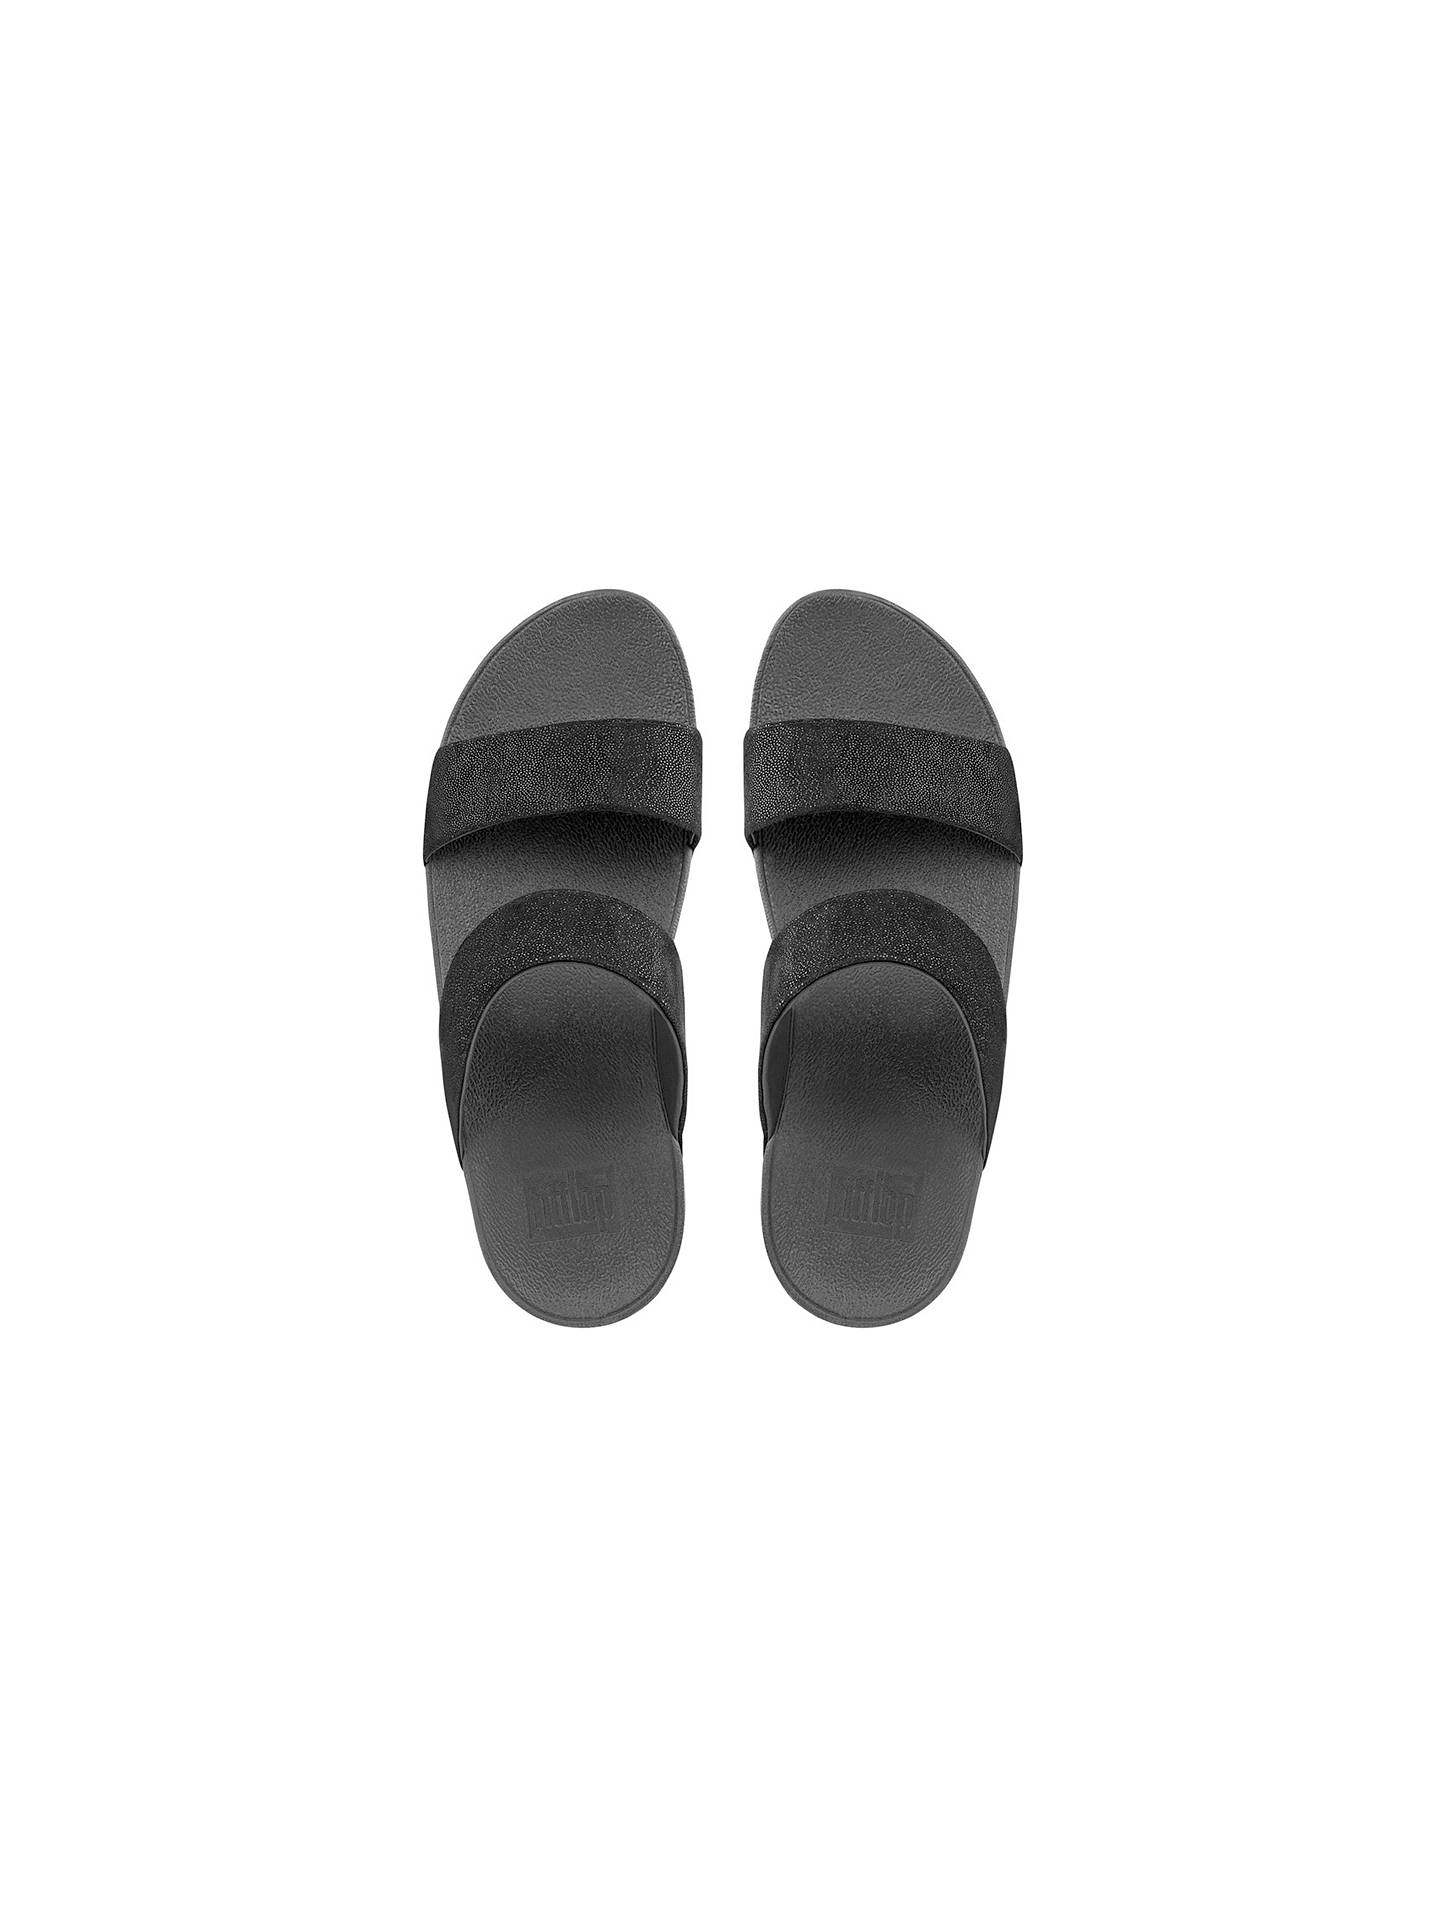 e6a0316d1db FitFlop Shimmy Suede Slide Sandals at John Lewis   Partners